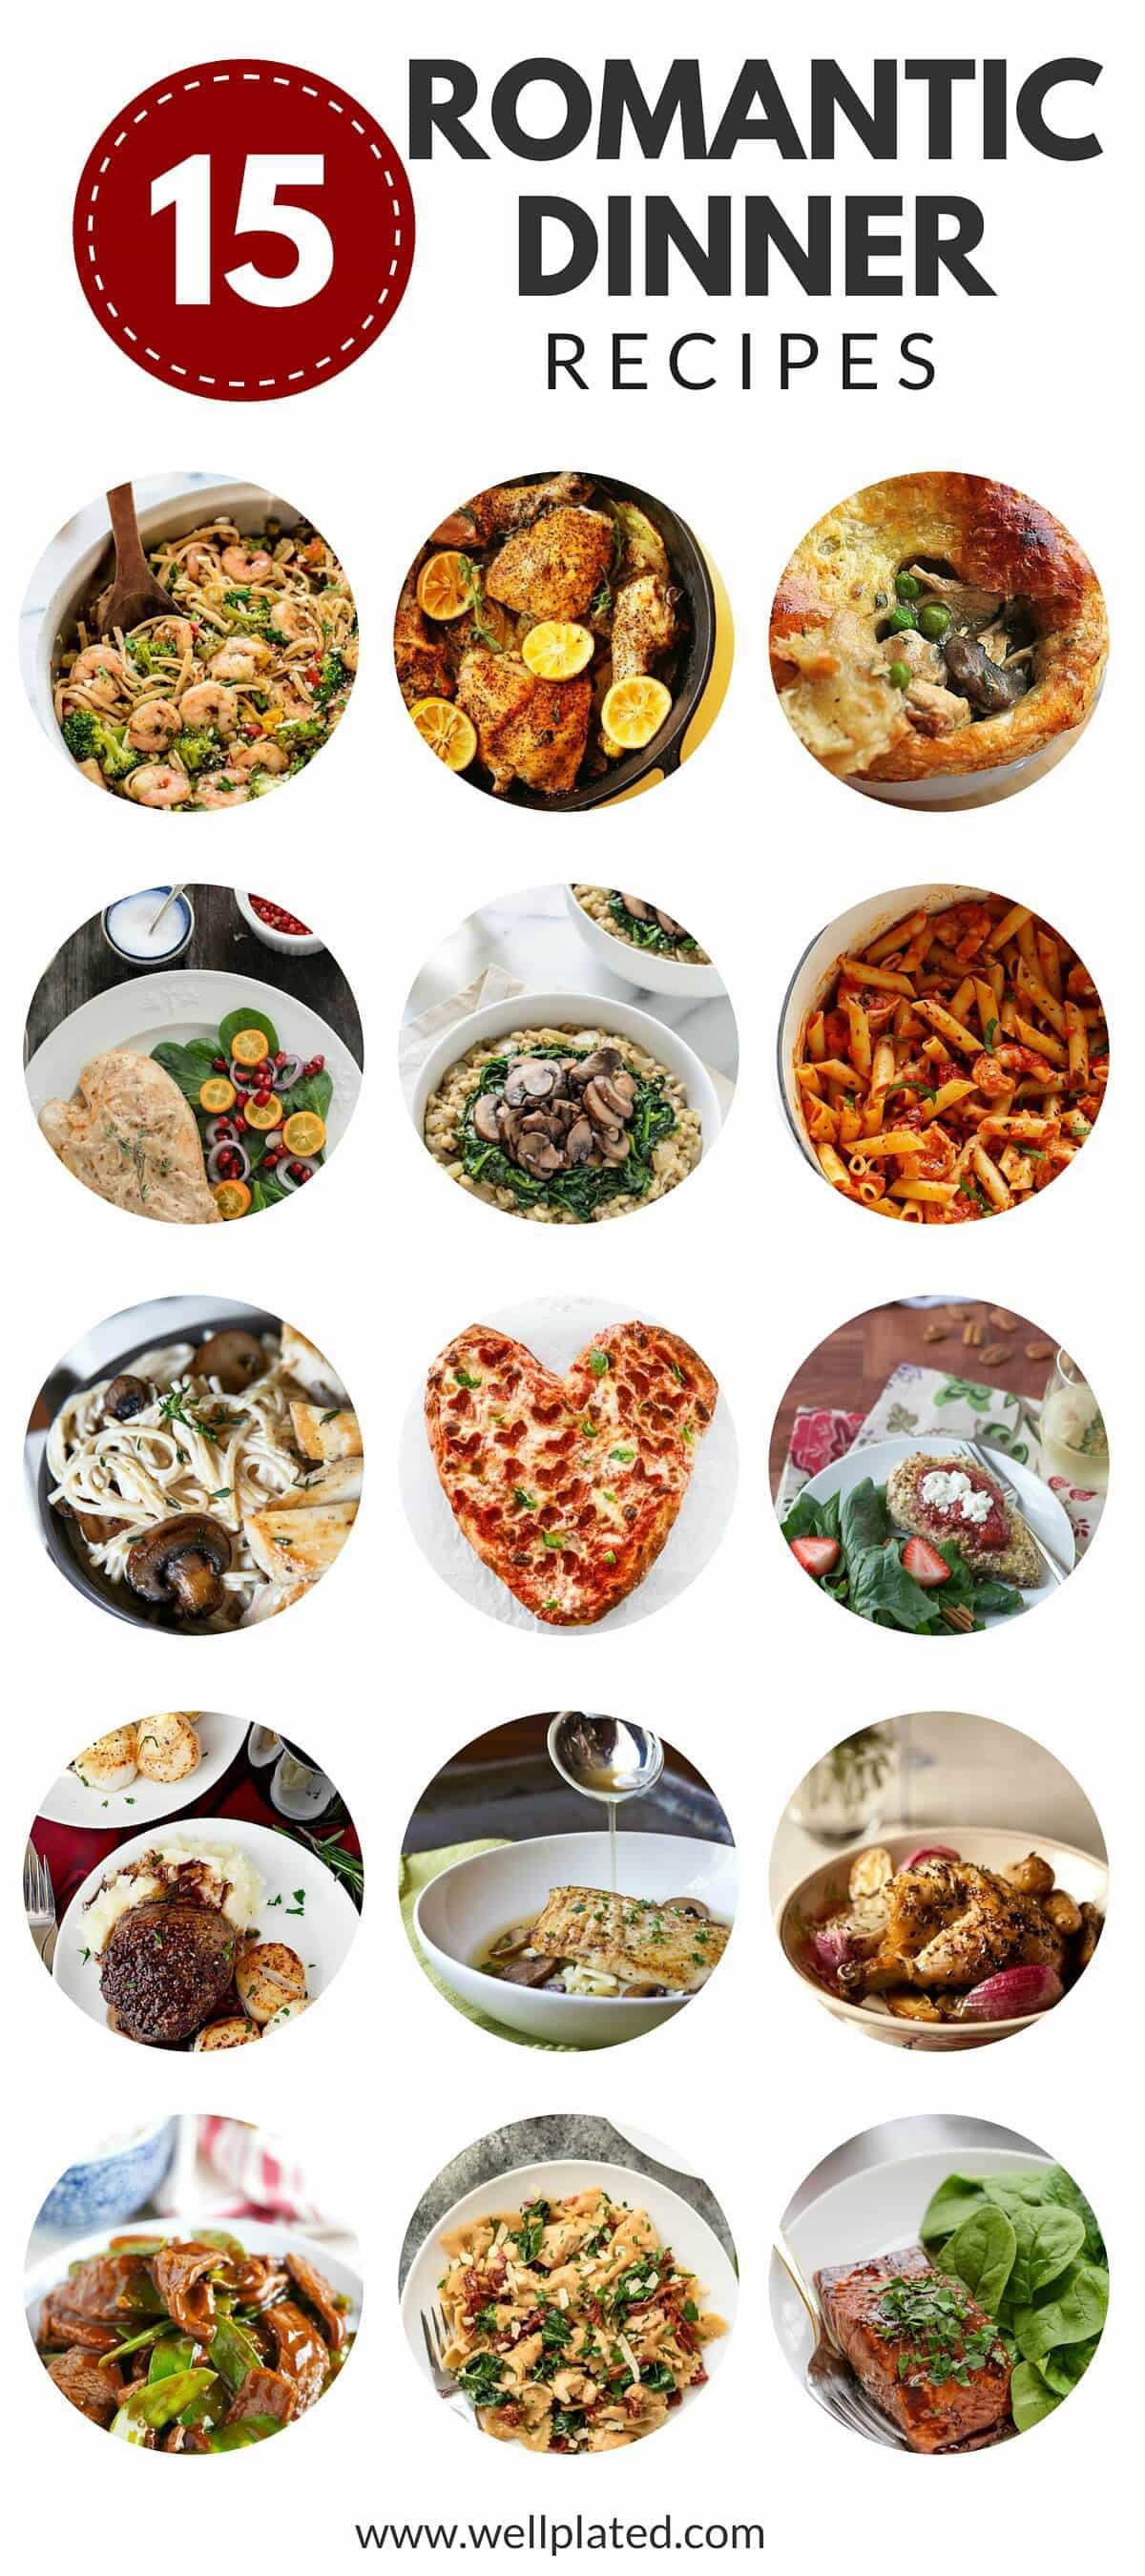 15 Romantic Dinner Recipes | Well Plated by Erin